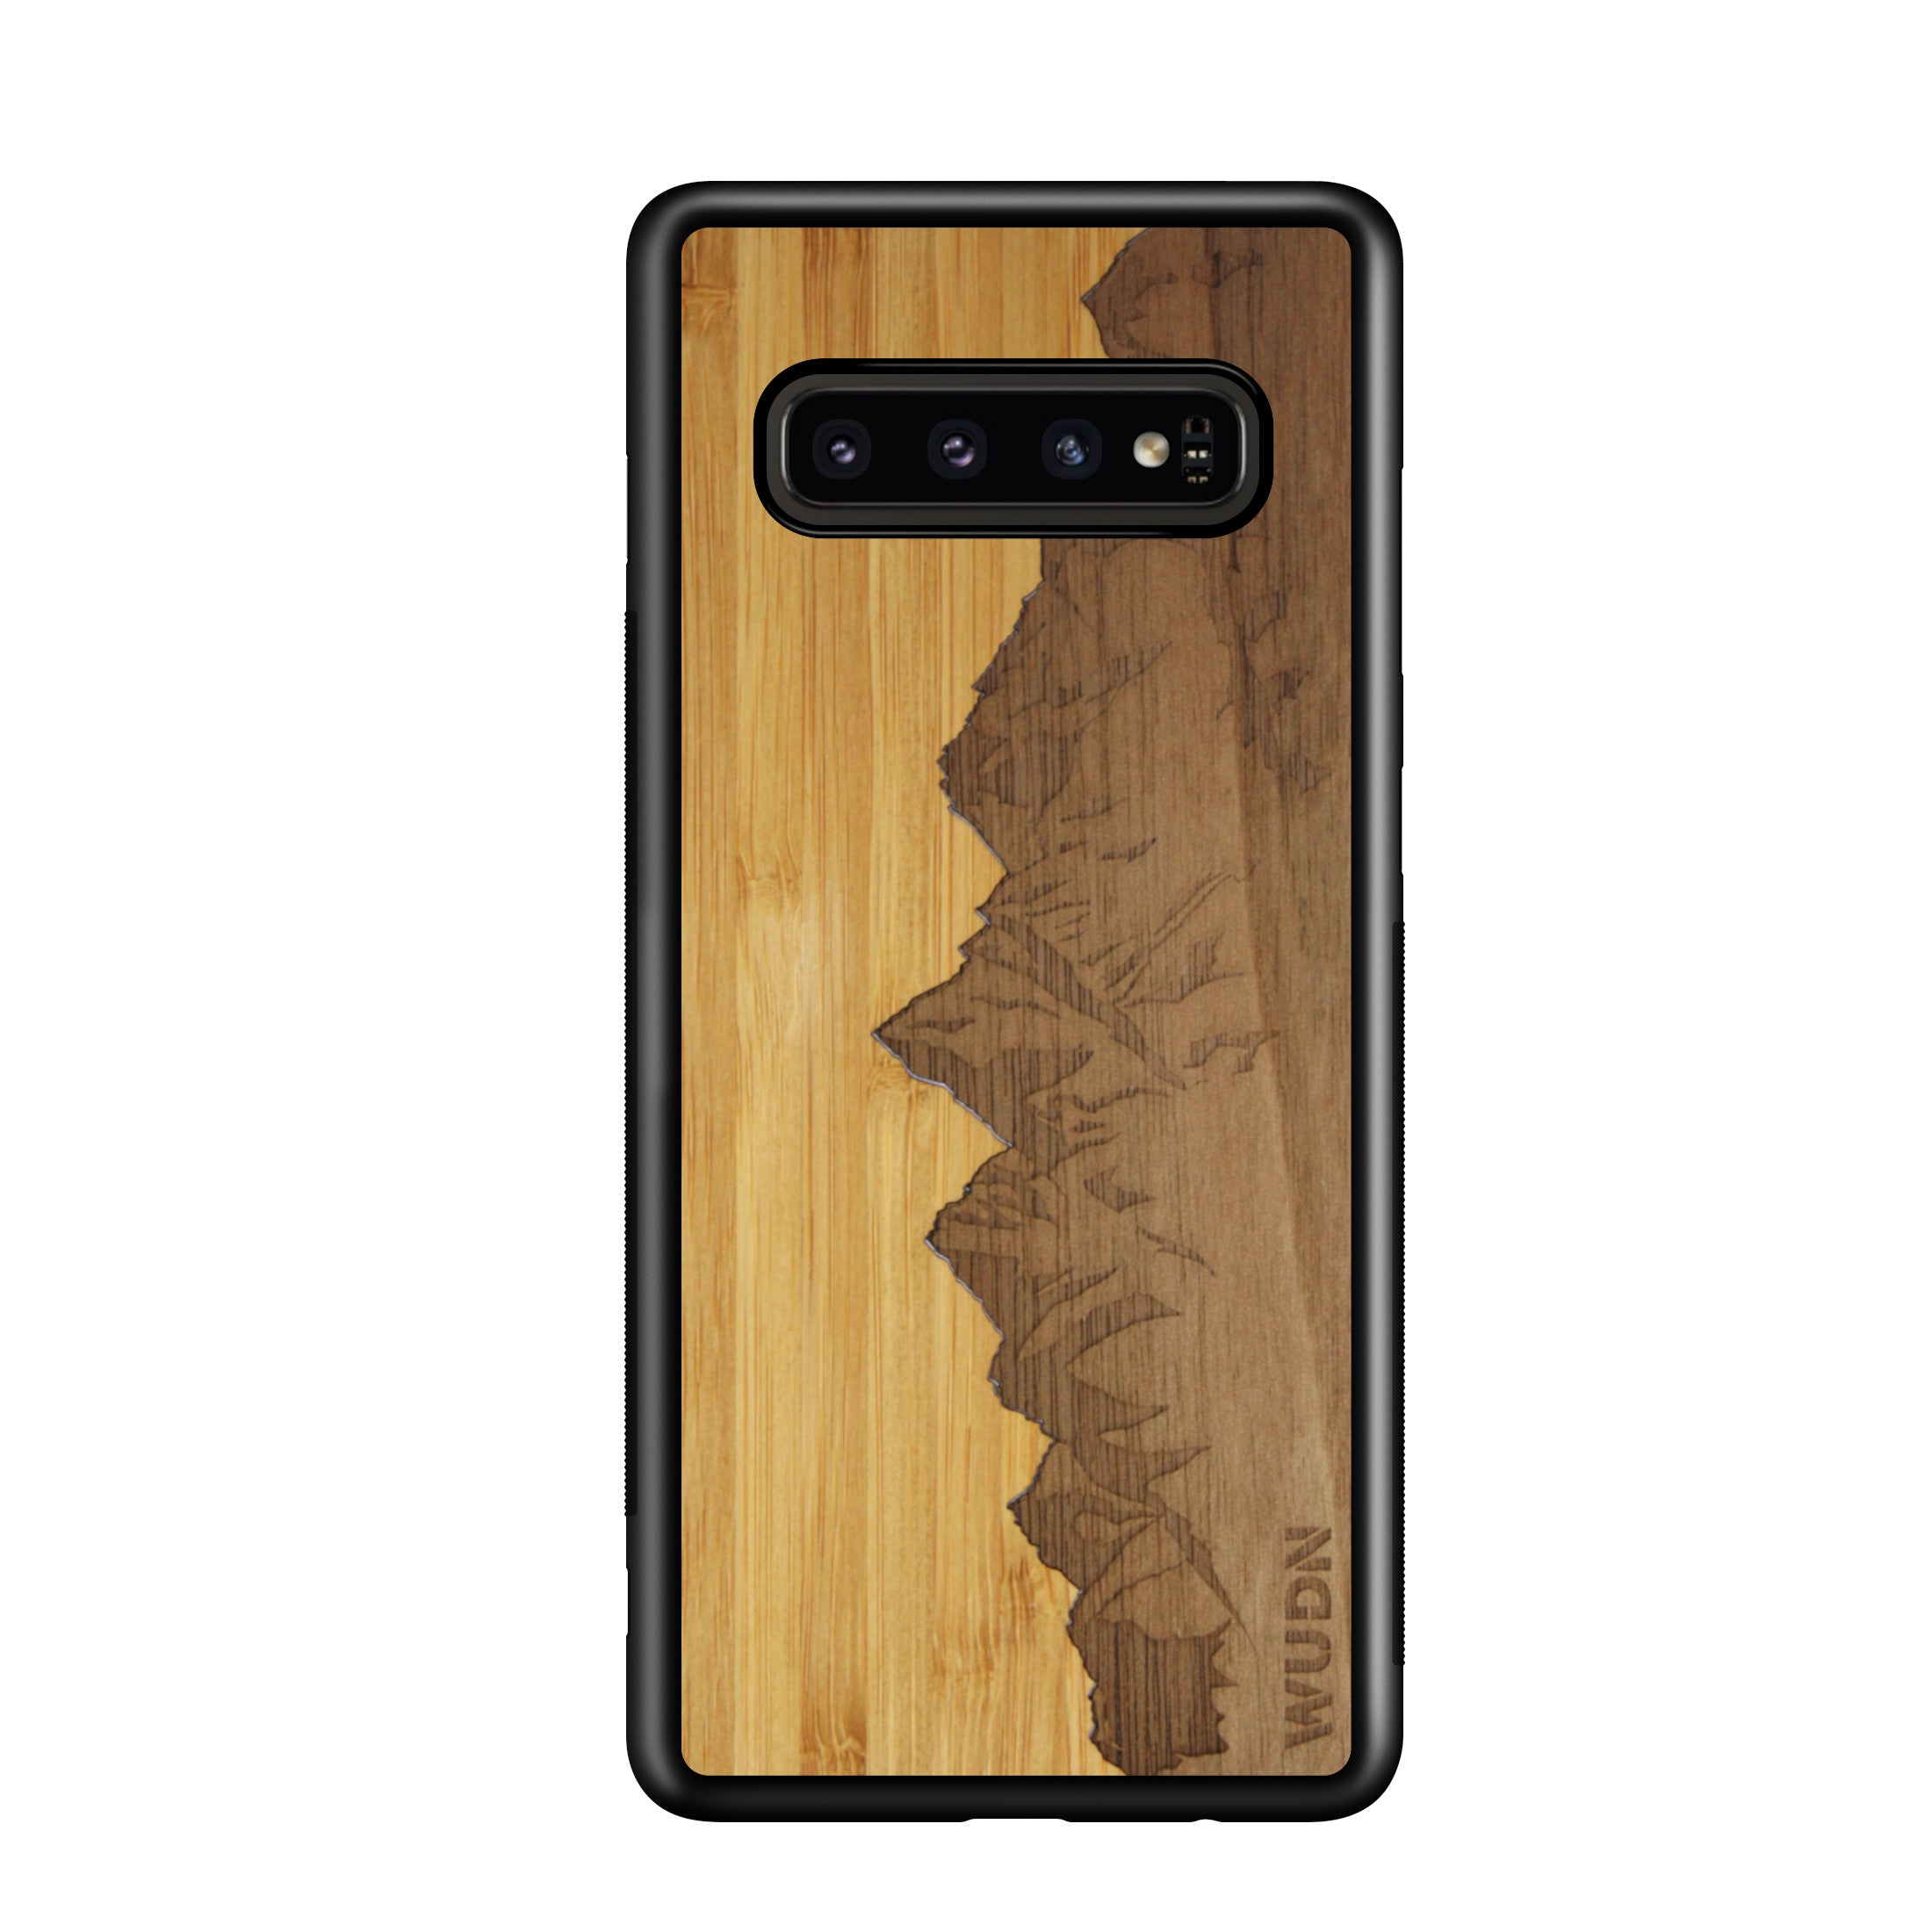 Slim Wooden Phone Case | Sawtooth Mountains Traveler, Cases by WUDN for Galaxy S10 Plus